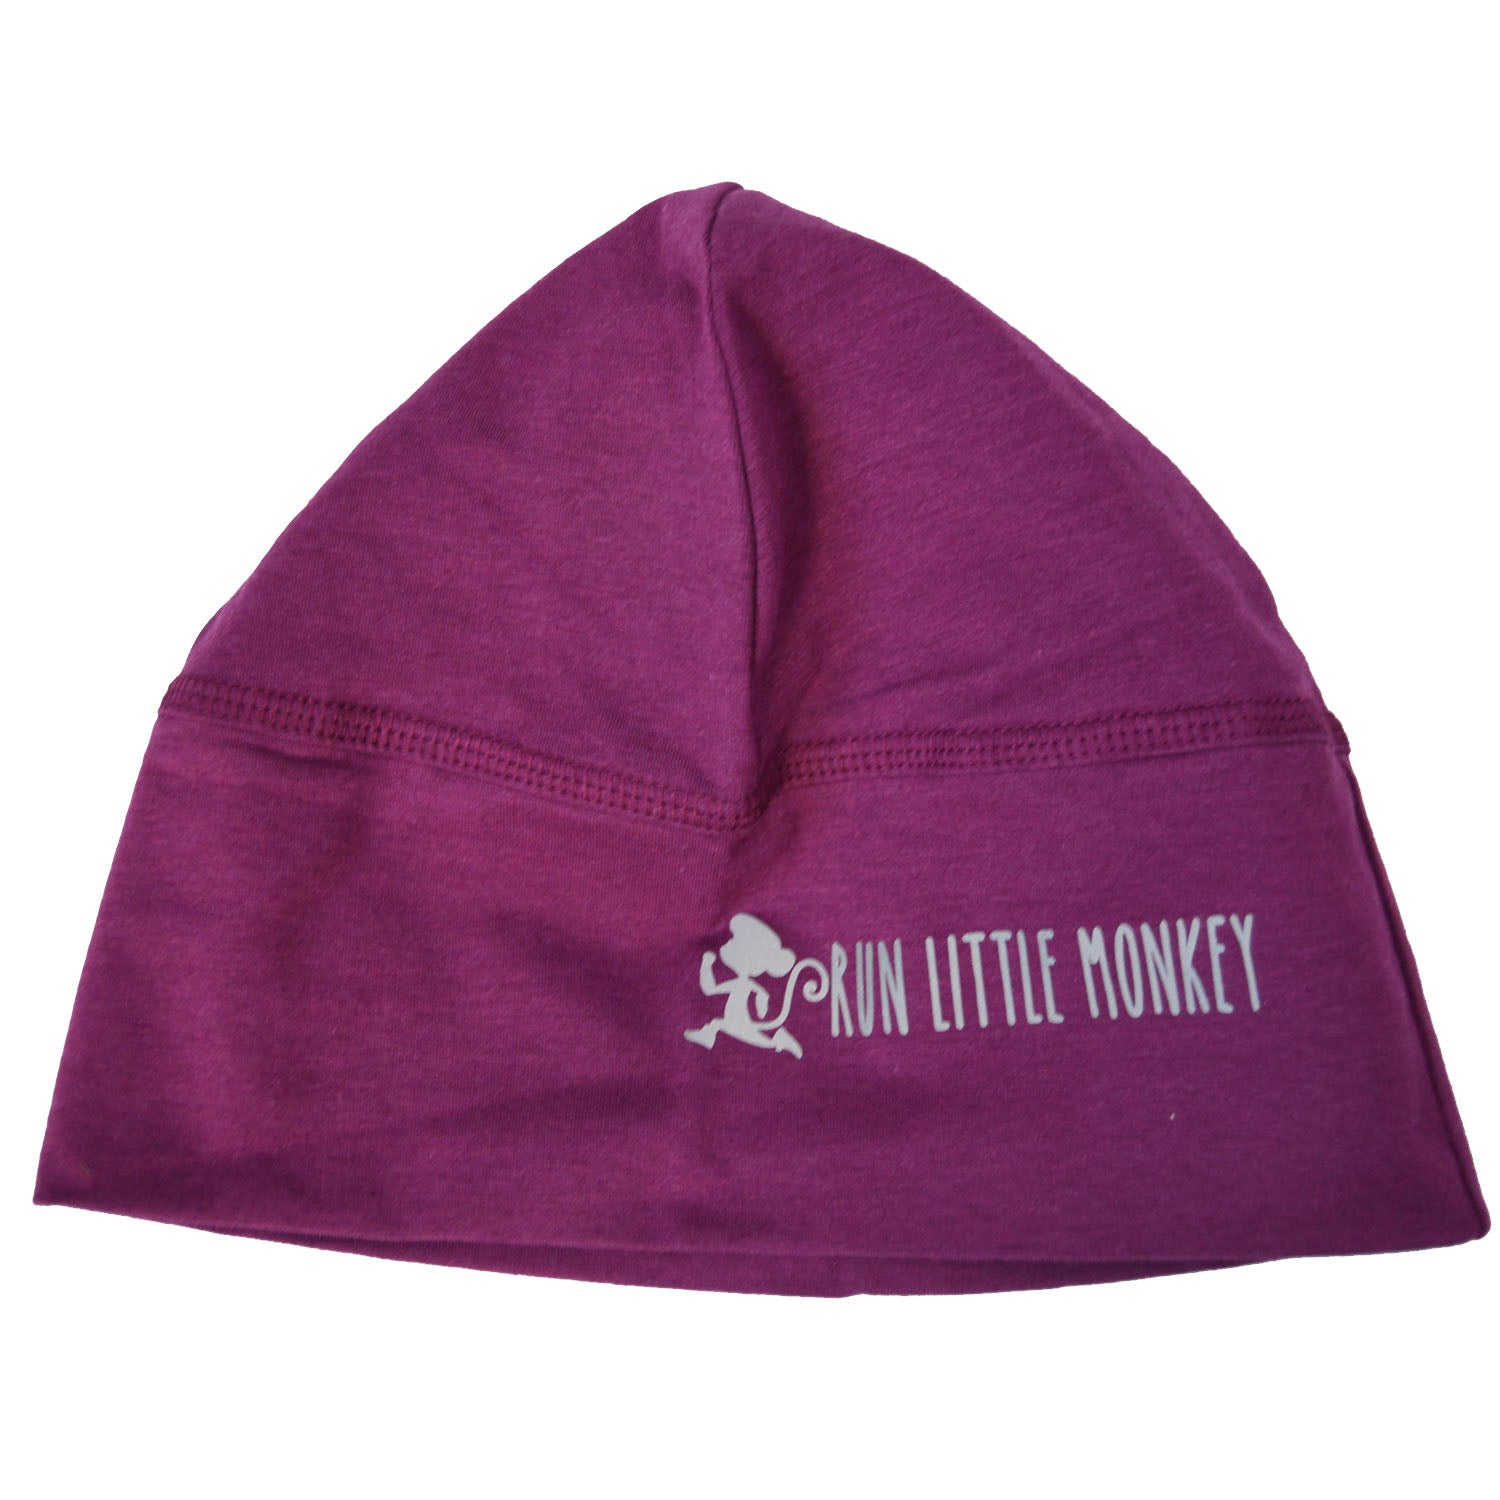 Run Little Monkey bamboo toque with pony tail hole